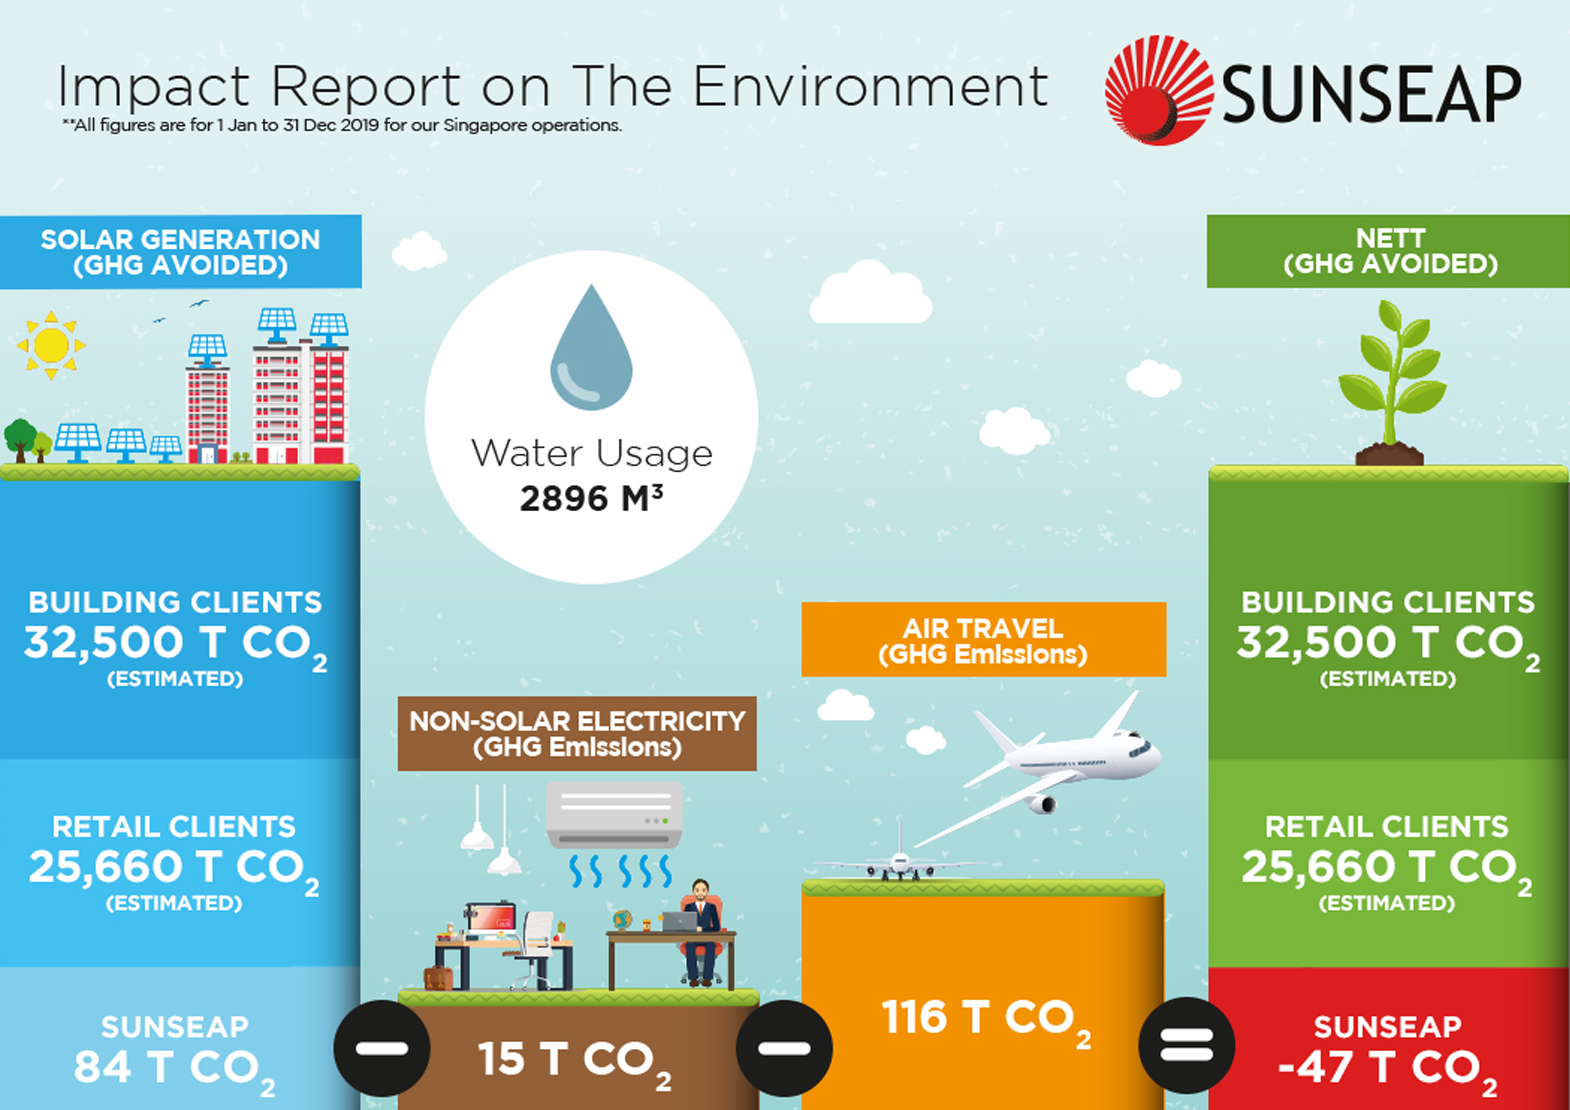 Sunseap's first sustainability impact report shows positive impact on environment